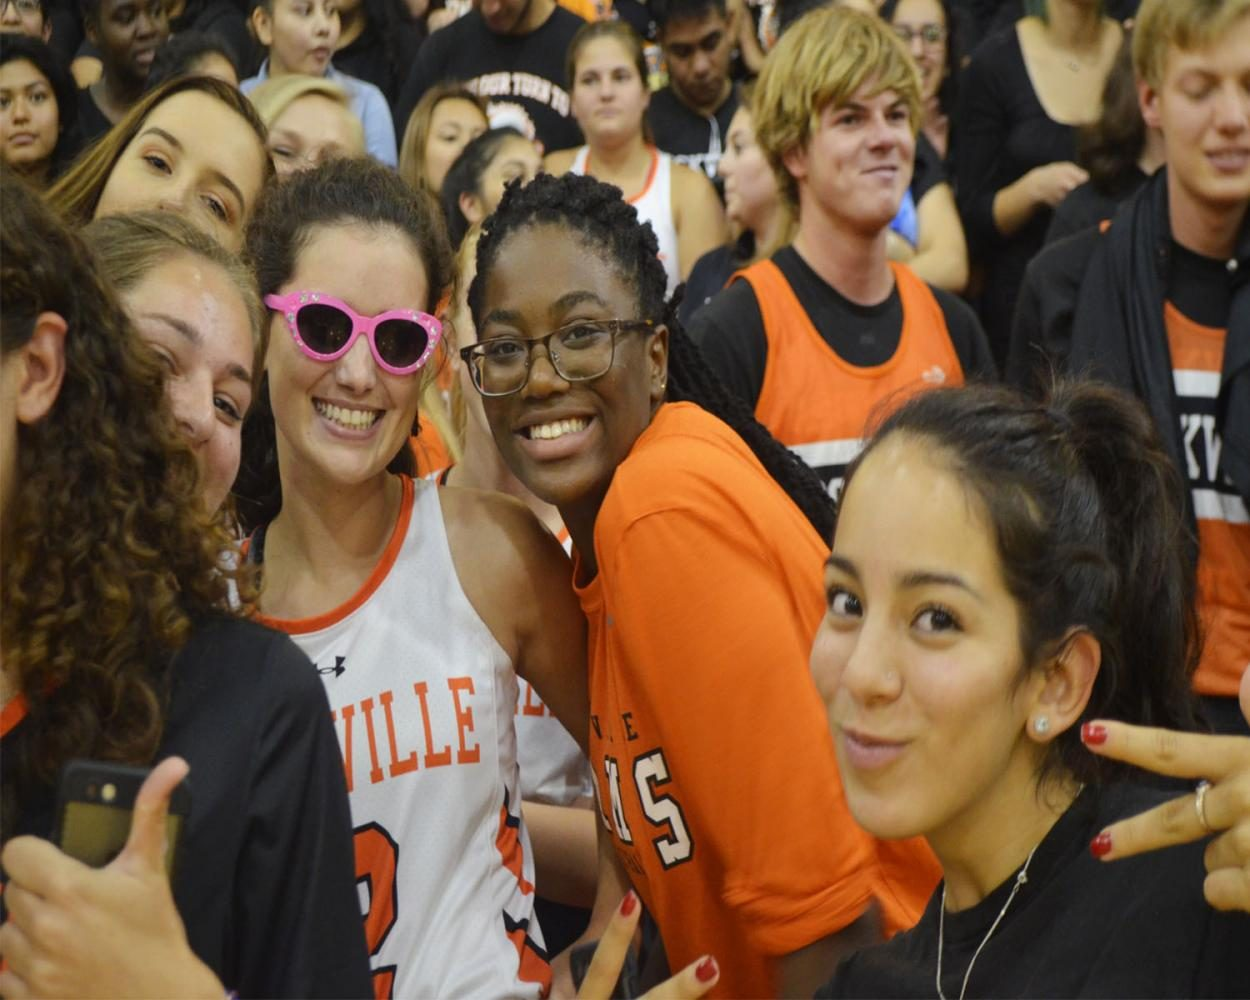 Seniors are all smiles at their last fall pep rally.